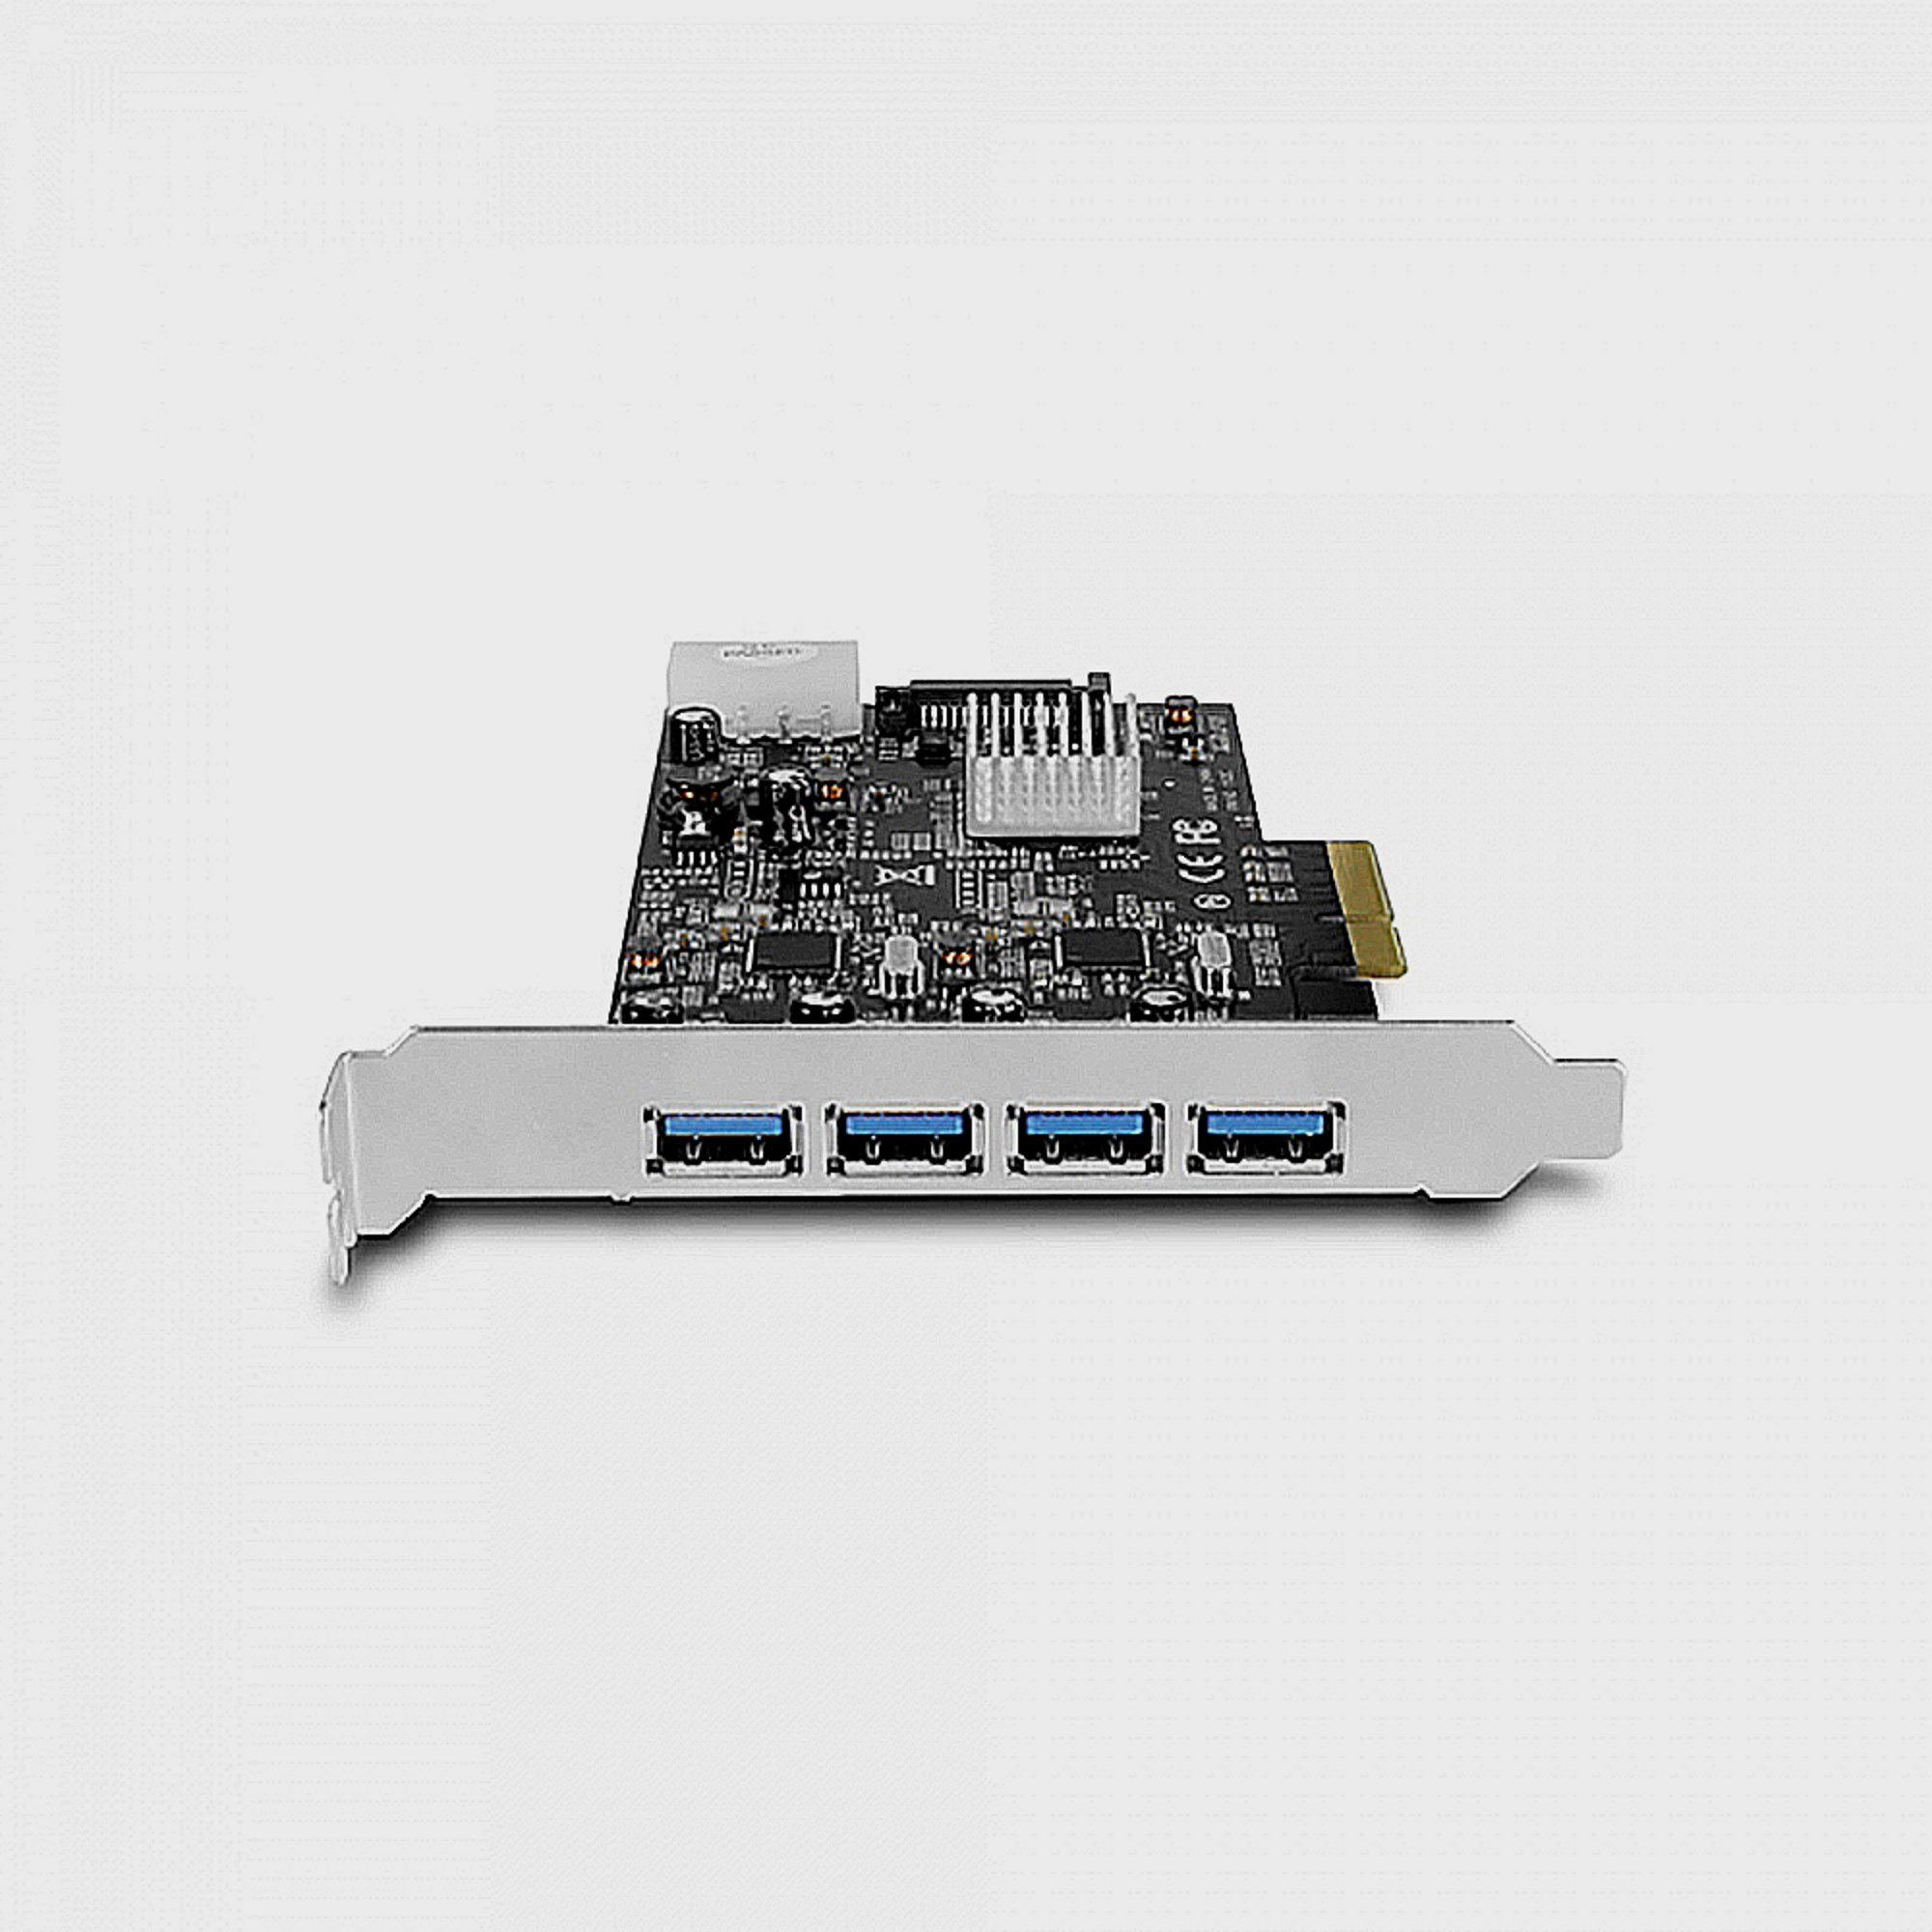 Vantec 4-Port Dedicated 10Gbps USB 3.1 Gen 2 PCIe Host Card with Dual Controller For PCIe x4/x8/x16 slot Black/Silver Black/Silver (UGT-PCE470-2C) by Vantec (Image #7)